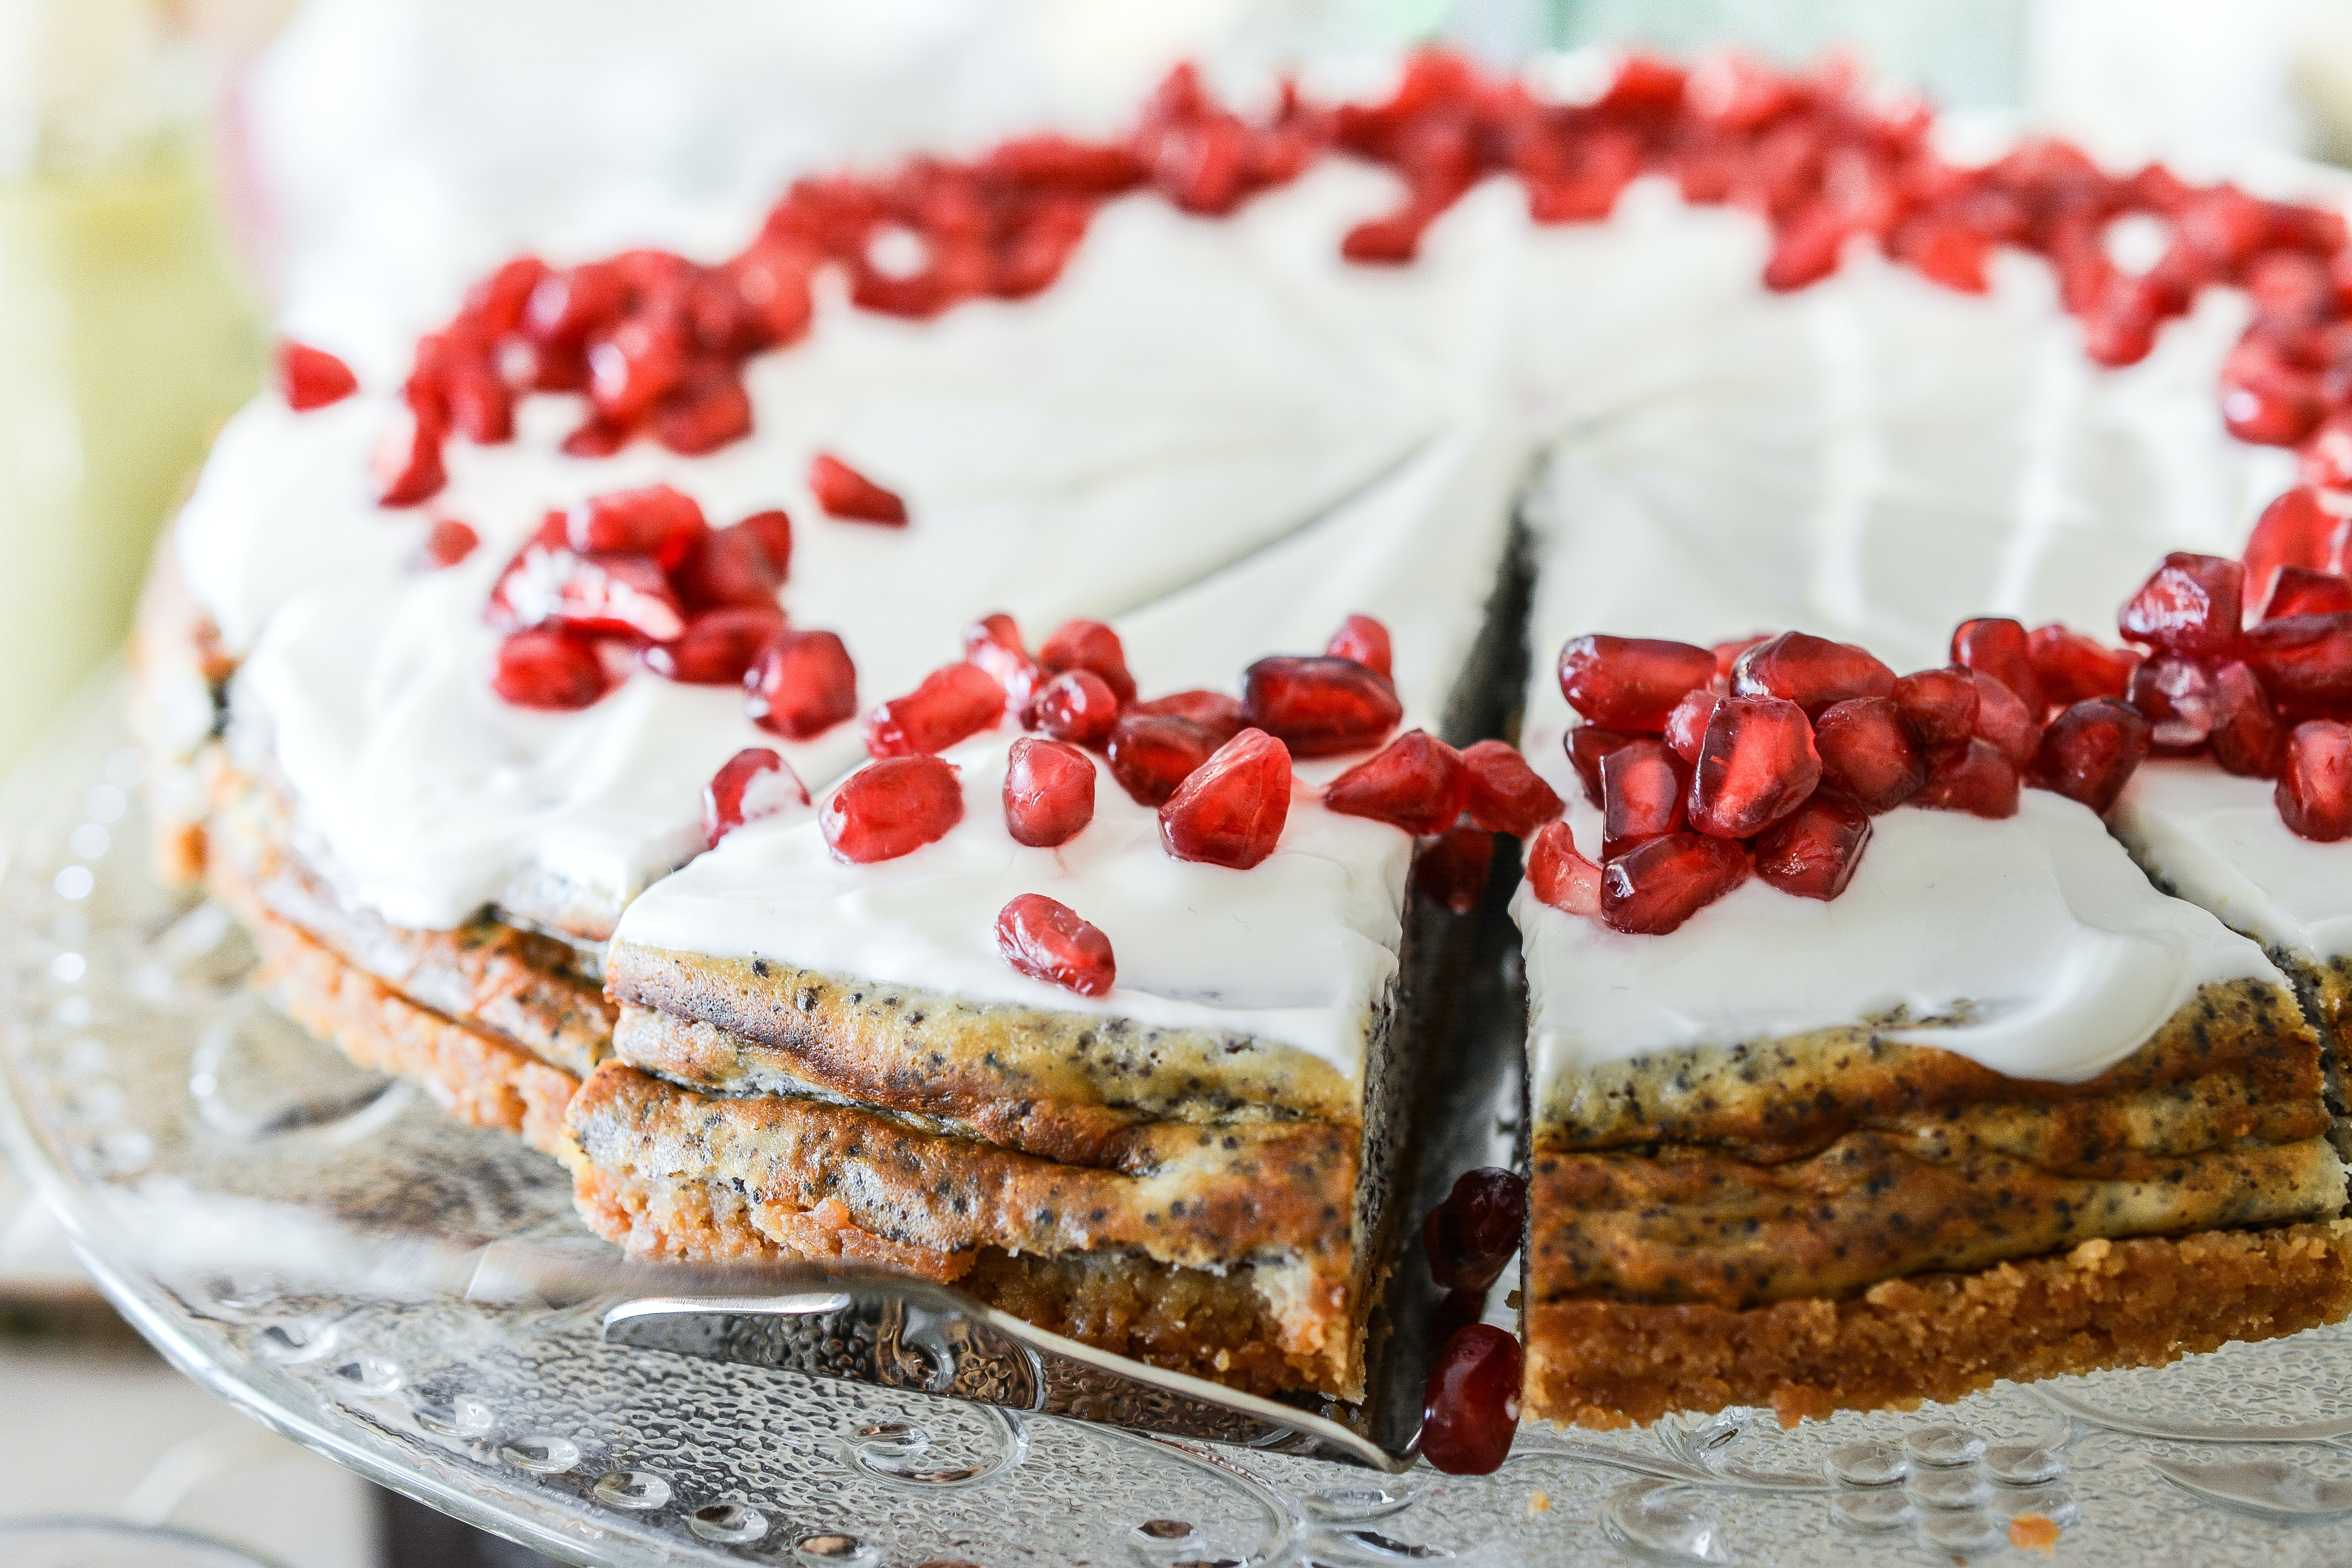 White-icing Pie With Red Berries